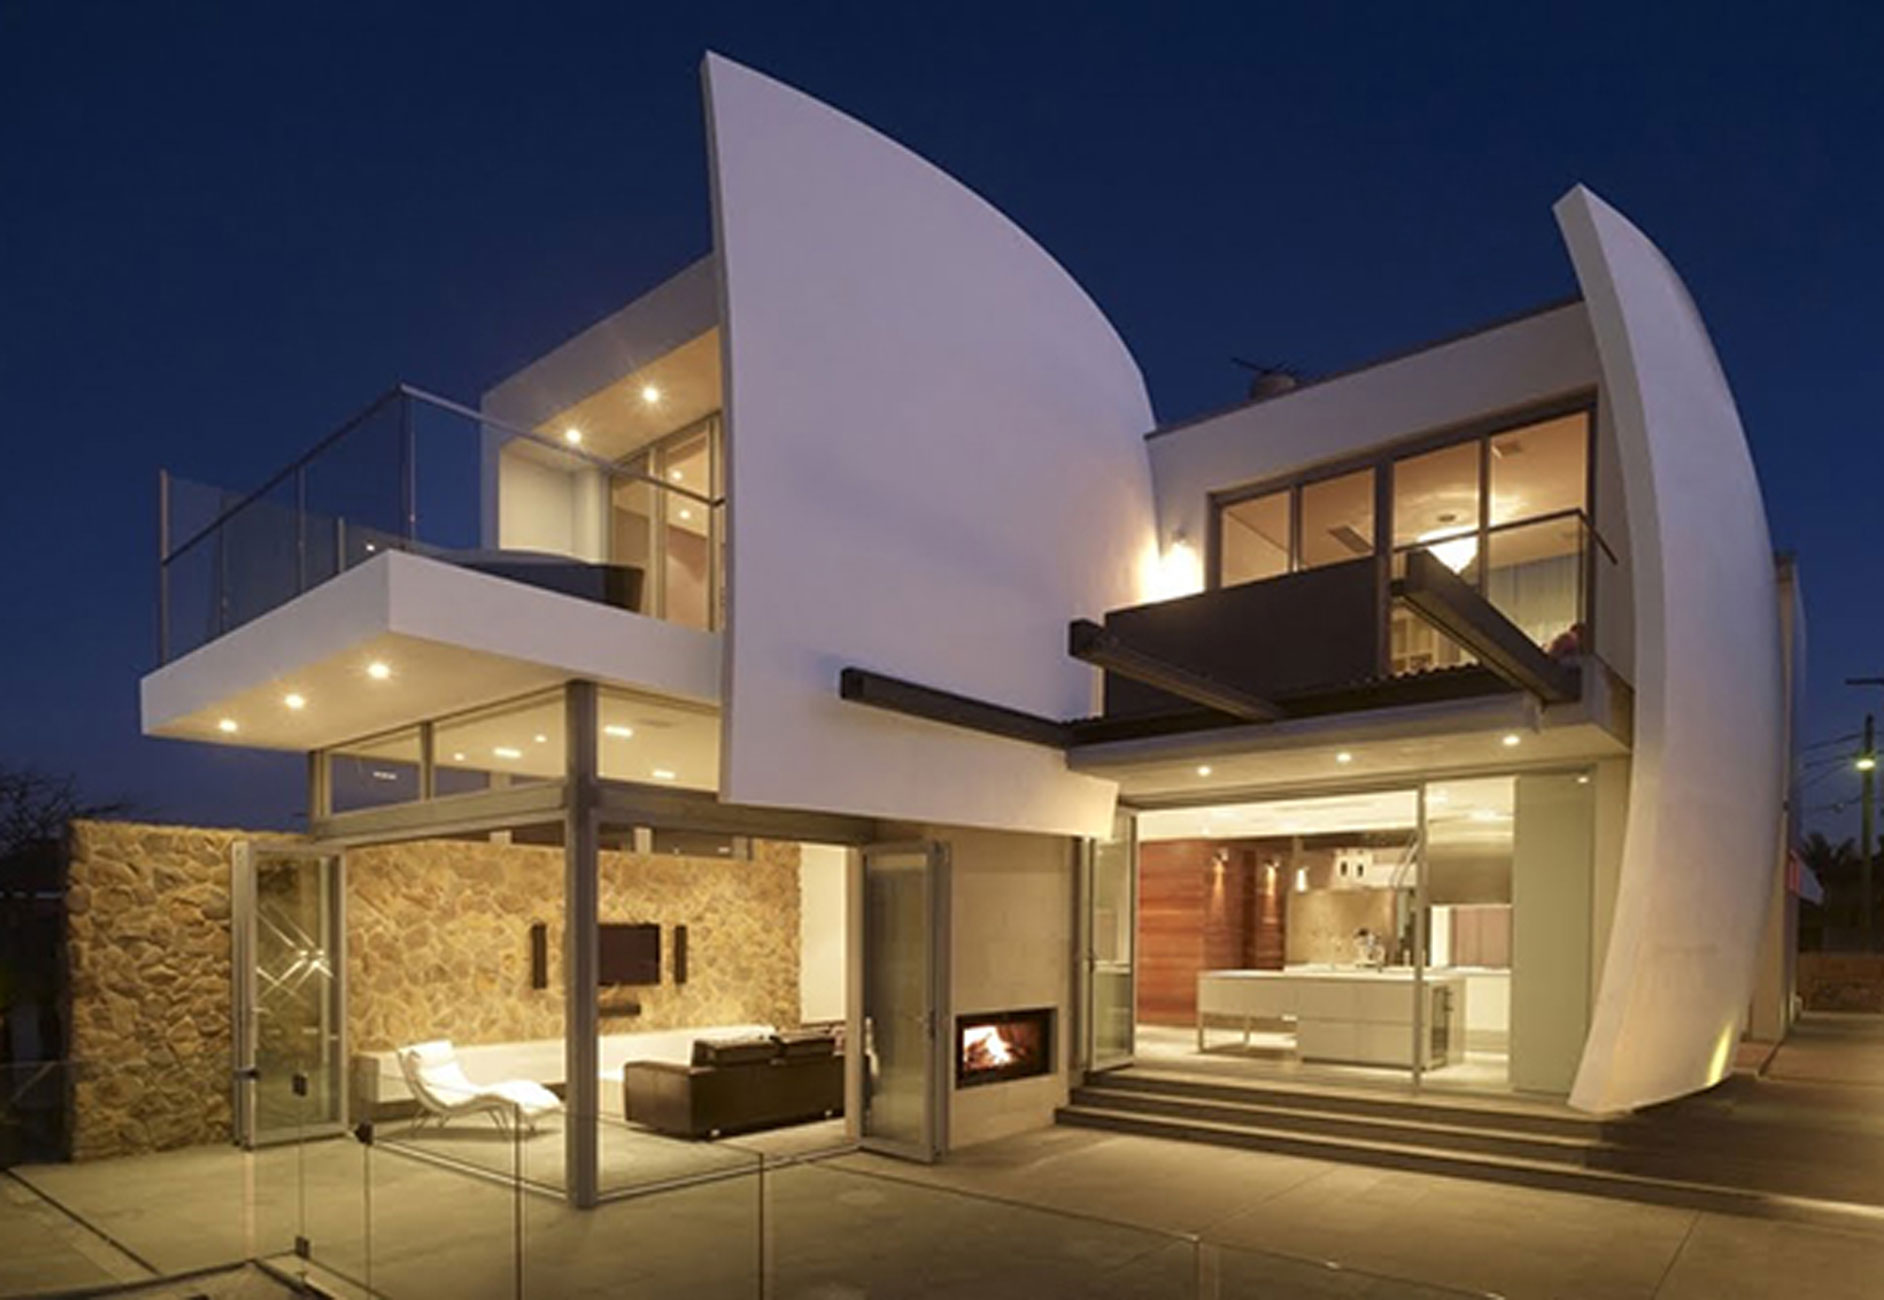 Luxurious Home Design With Futuristic Architecture In Australia